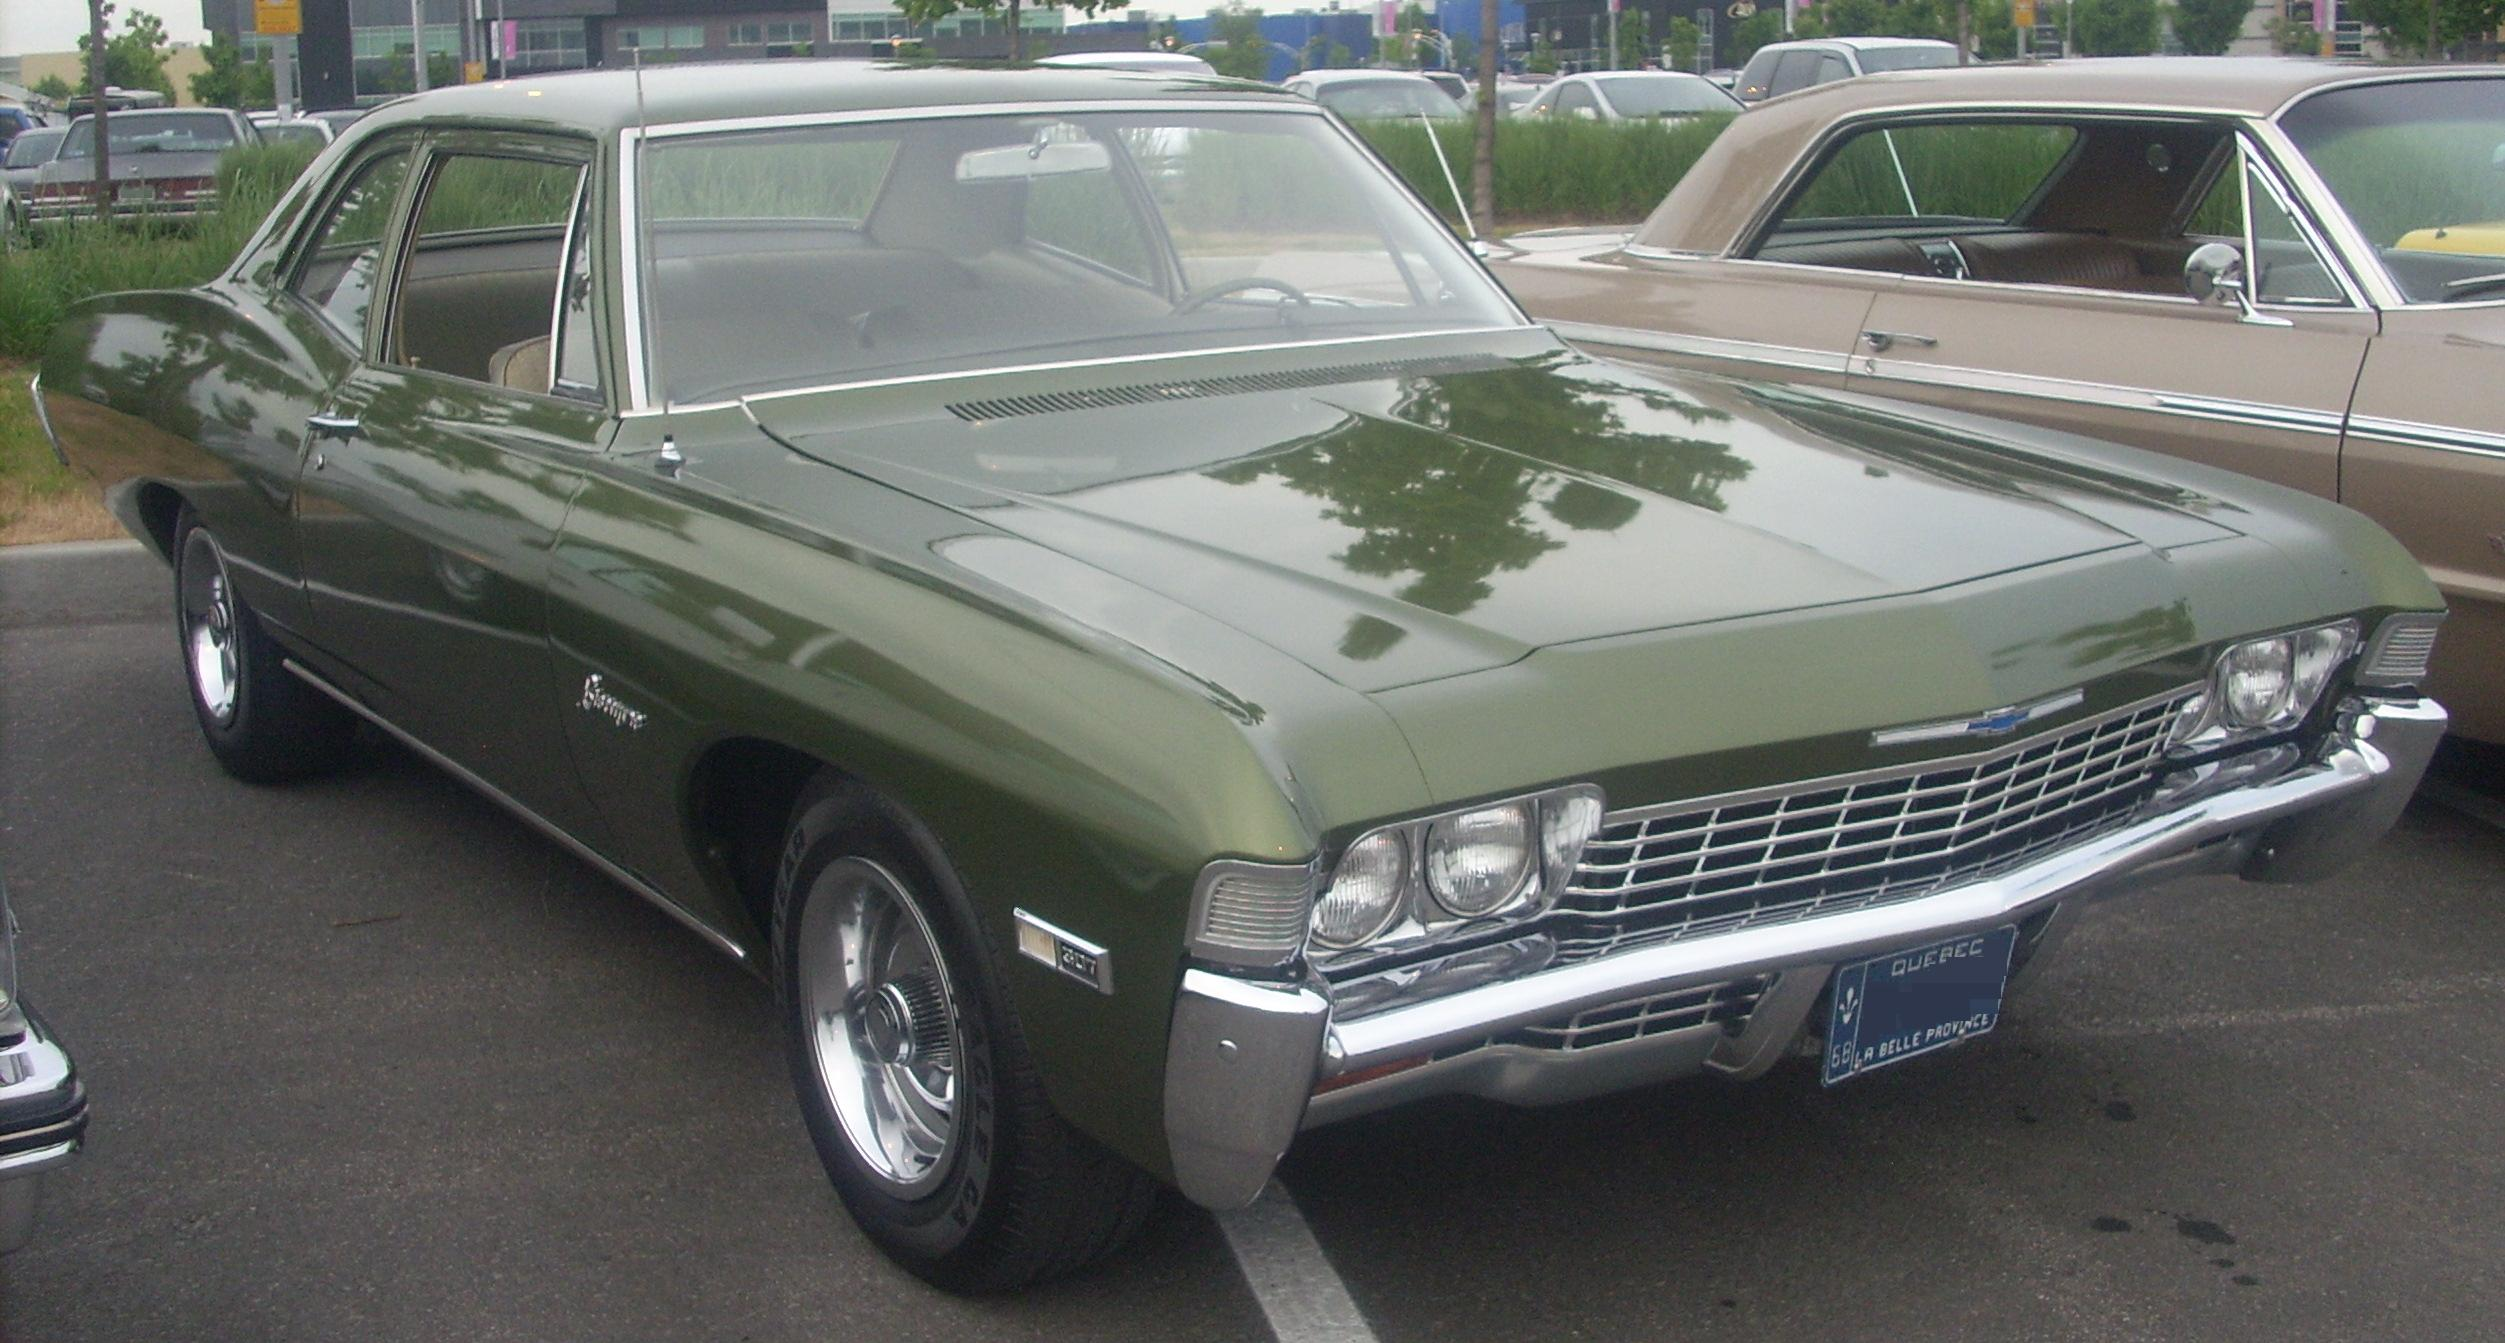 1968 Chevrolet Biscayne %2768_Chevrolet_Biscayne_Coupe_%28Centropolis_Laval_%2710%29